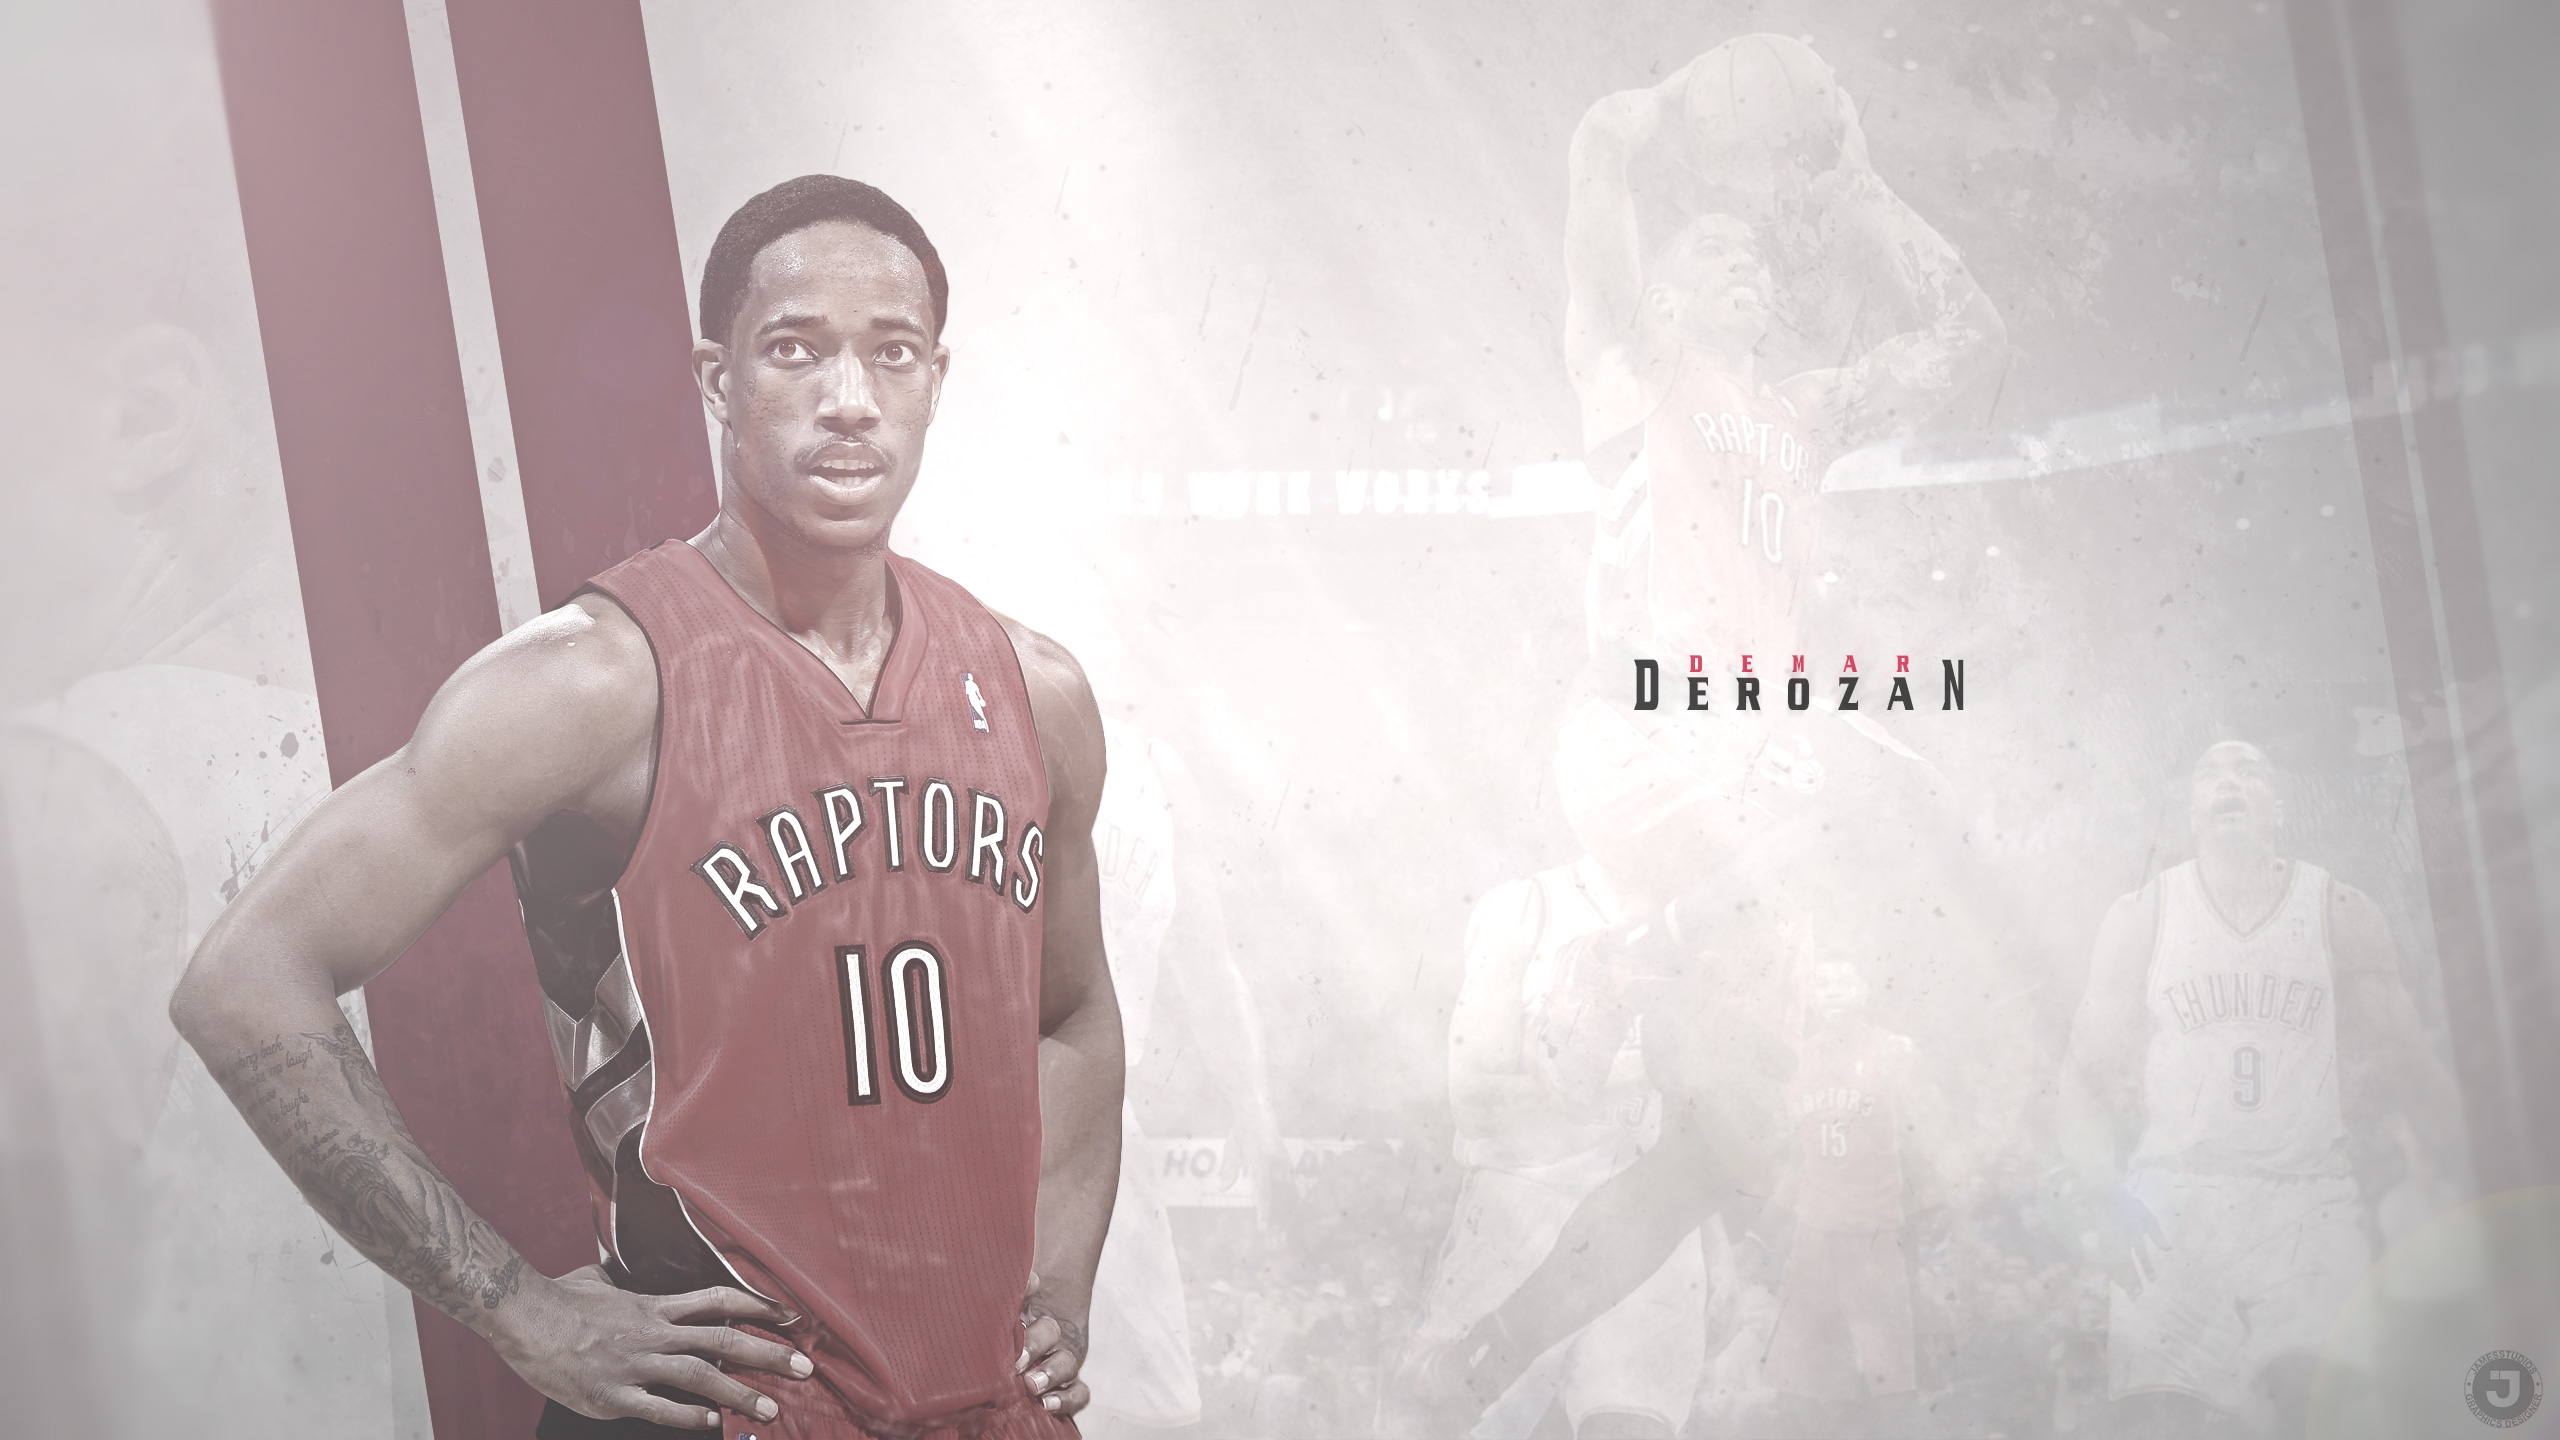 DeMar DeRozan Toronto Raptors 2015 2560x1440 Wallpaper